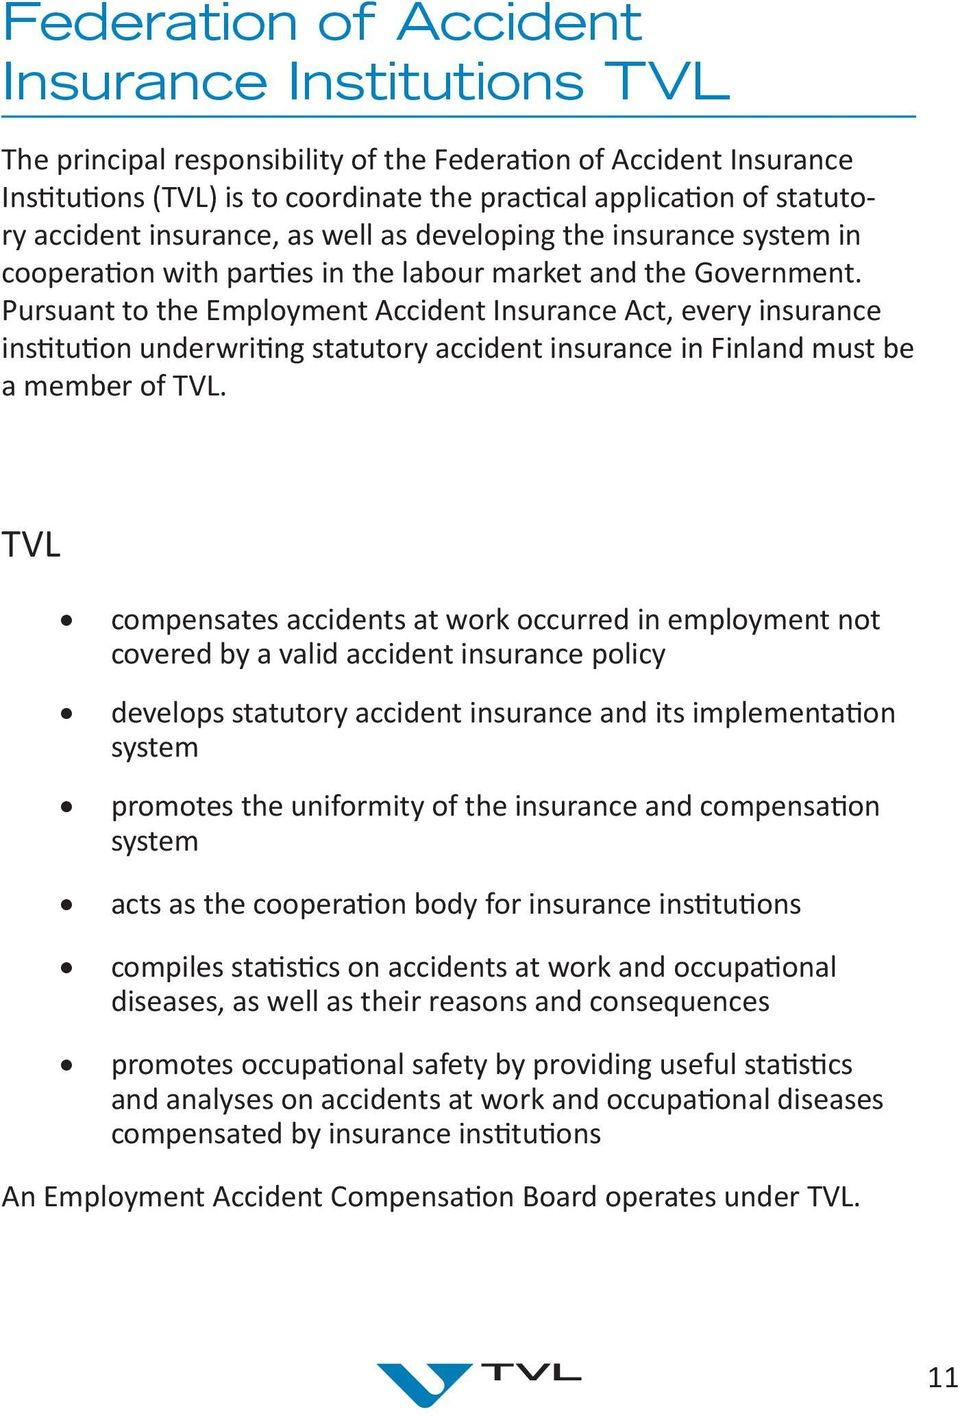 Pursuant to the Employment Accident Insurance Act, every insurance institution underwriting statutory accident insurance in Finland must be a member of TVL.